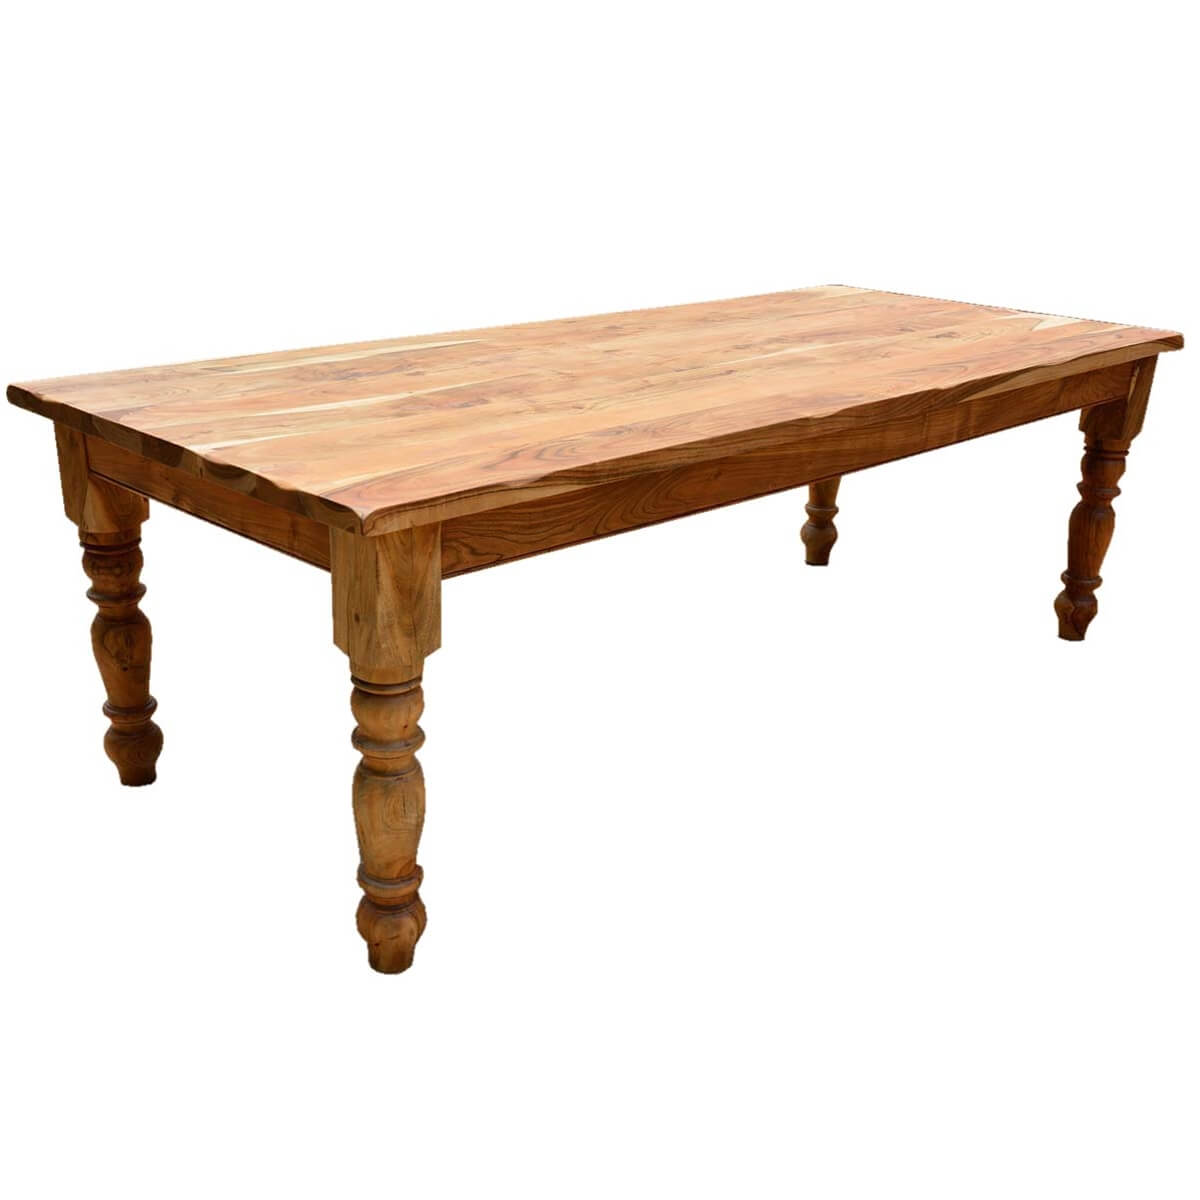 Solid Wood Furniture Of Solid Wood Farmhouse Dining Table Solid Wood Vintage